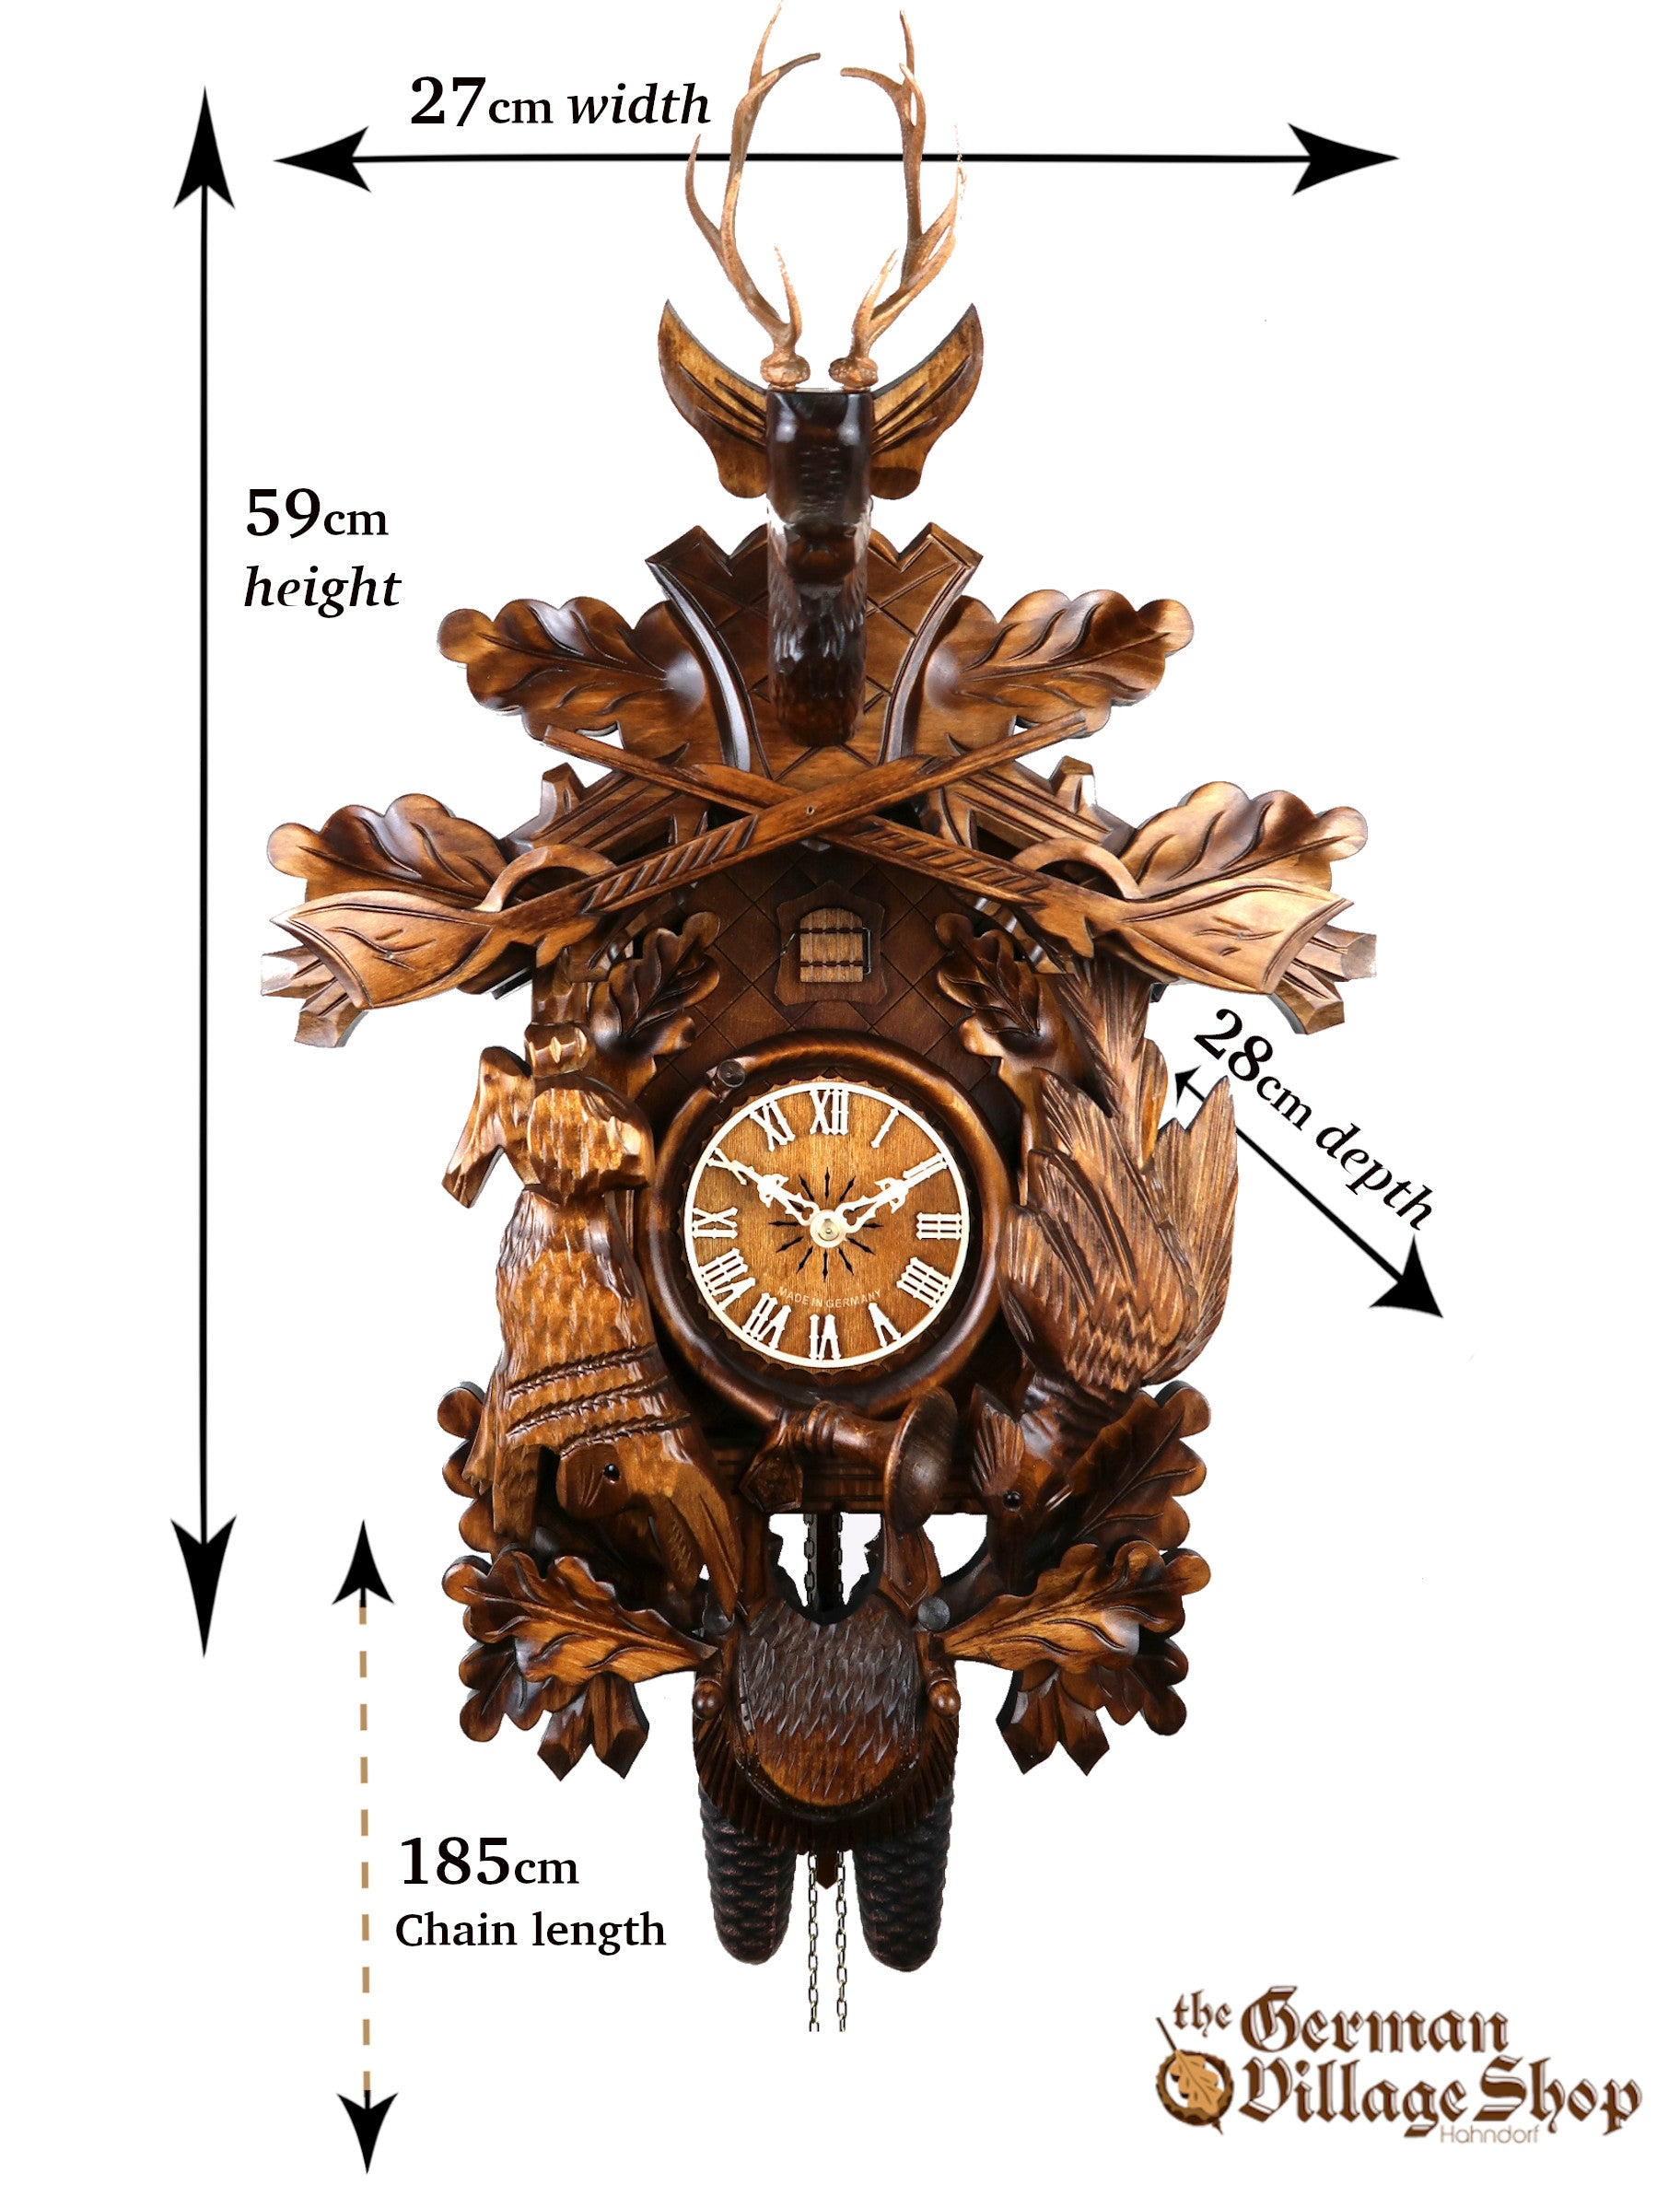 Size of the German Cuckoo clock import and for sale in Australia